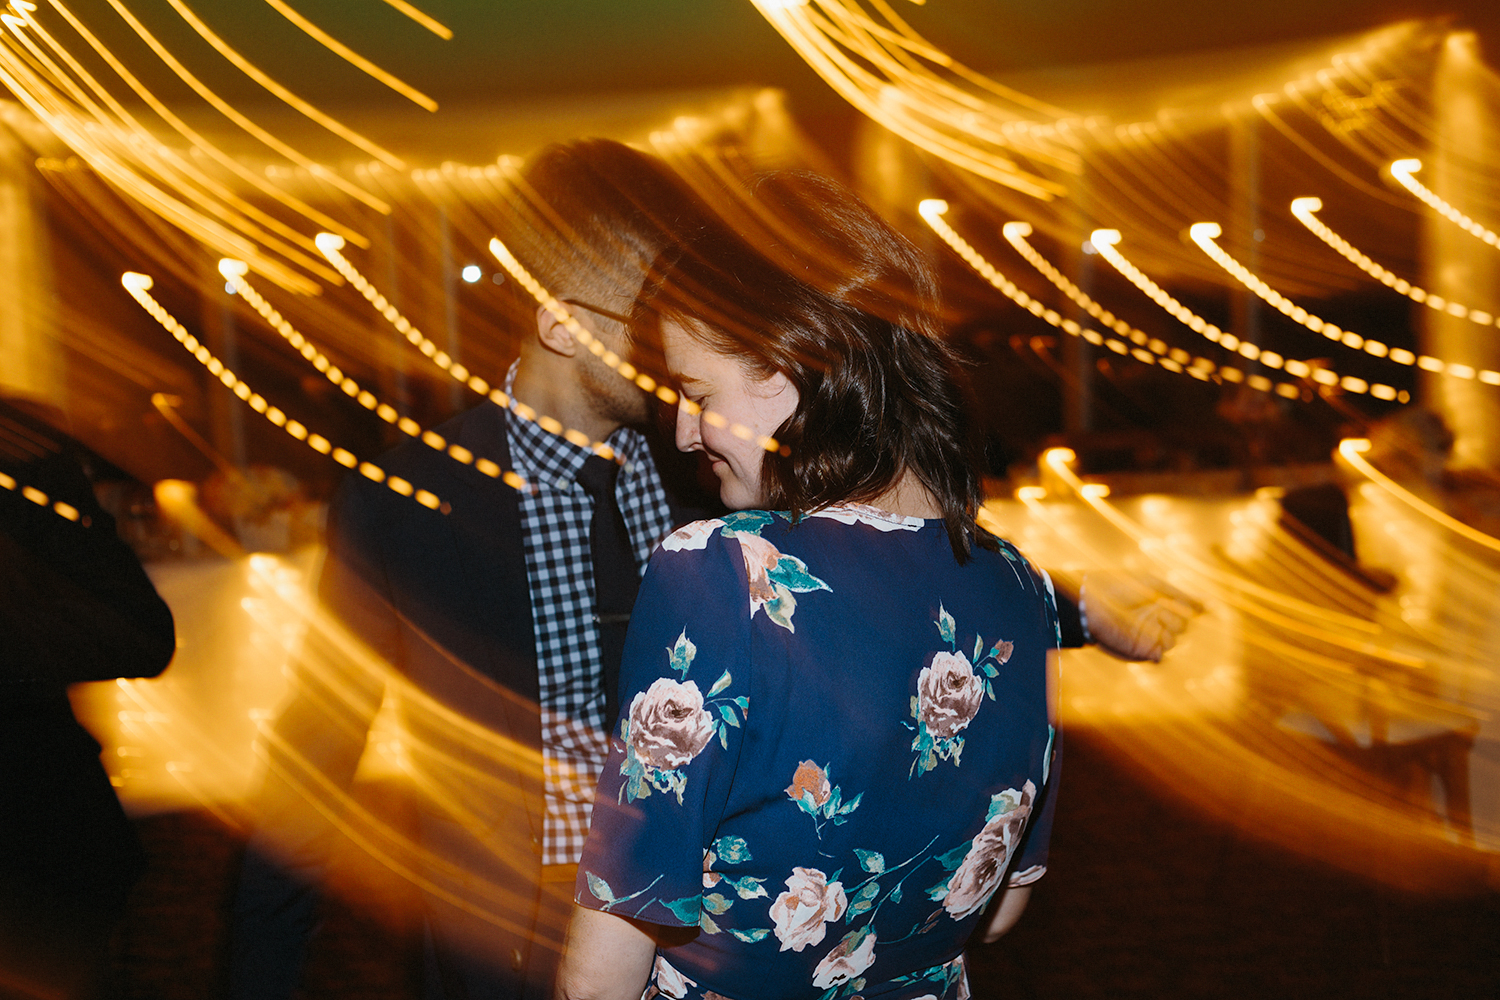 documentary-photos-of-guests-dancing-partying-crazy-lights-at-reception-At-Eganridge-Resort-Venue-Muskoka-Ontario-Wedding-Photography-by-Ryanne-Hollies-Photography-Toronto-Documentary-Wedding-Photographer.jpg